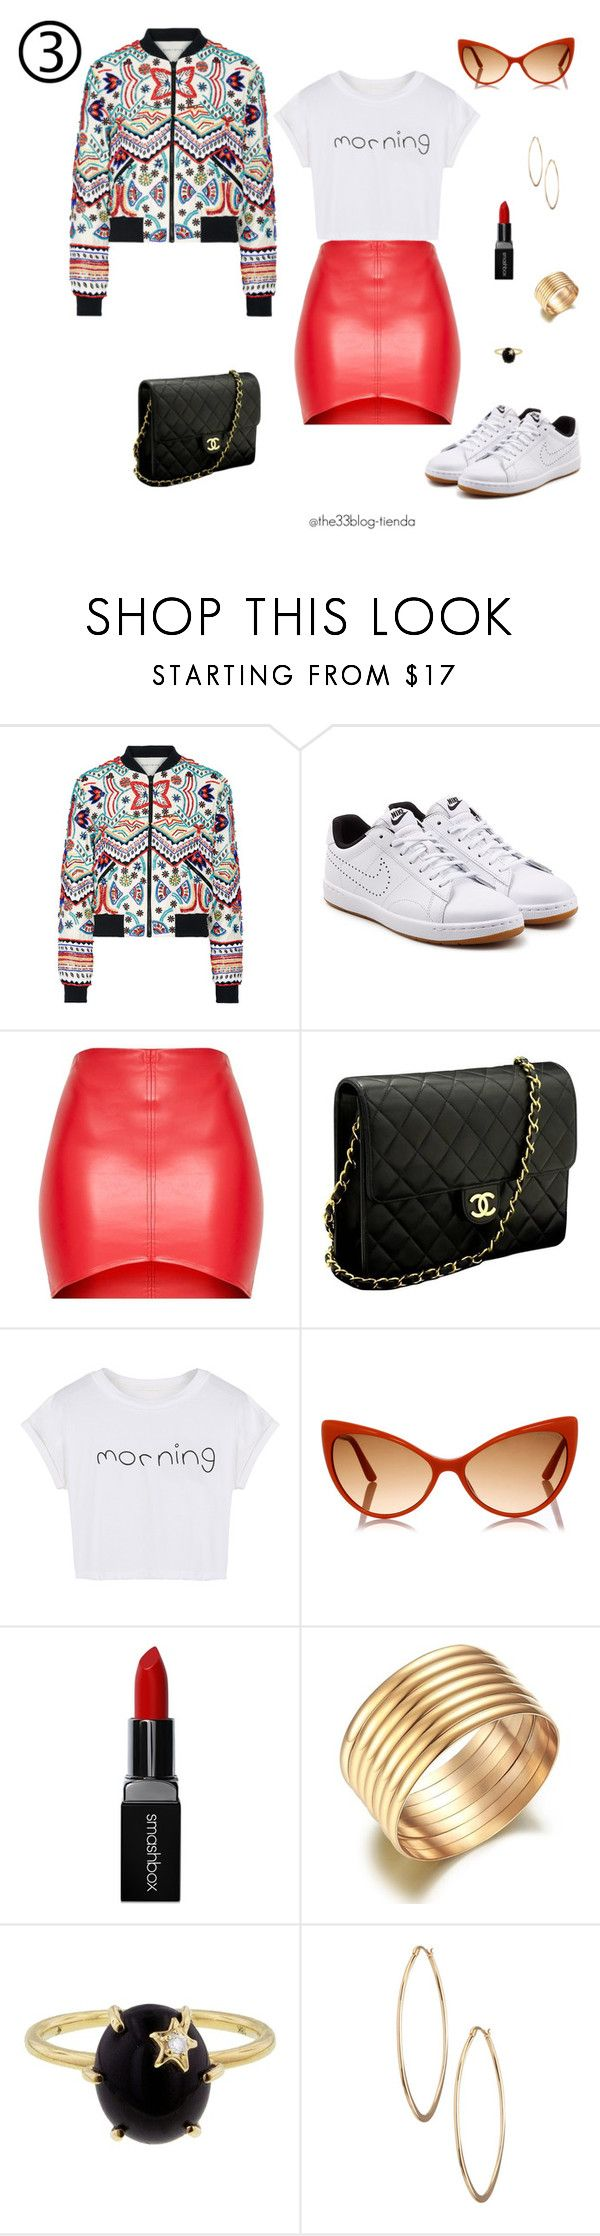 """""""bomber jacket 6"""" by jeniffercrystel on Polyvore featuring moda, Alice + Olivia, NIKE, Chanel, WithChic, Tom Ford, Smashbox, Andrea Fohrman y Lydell NYC"""